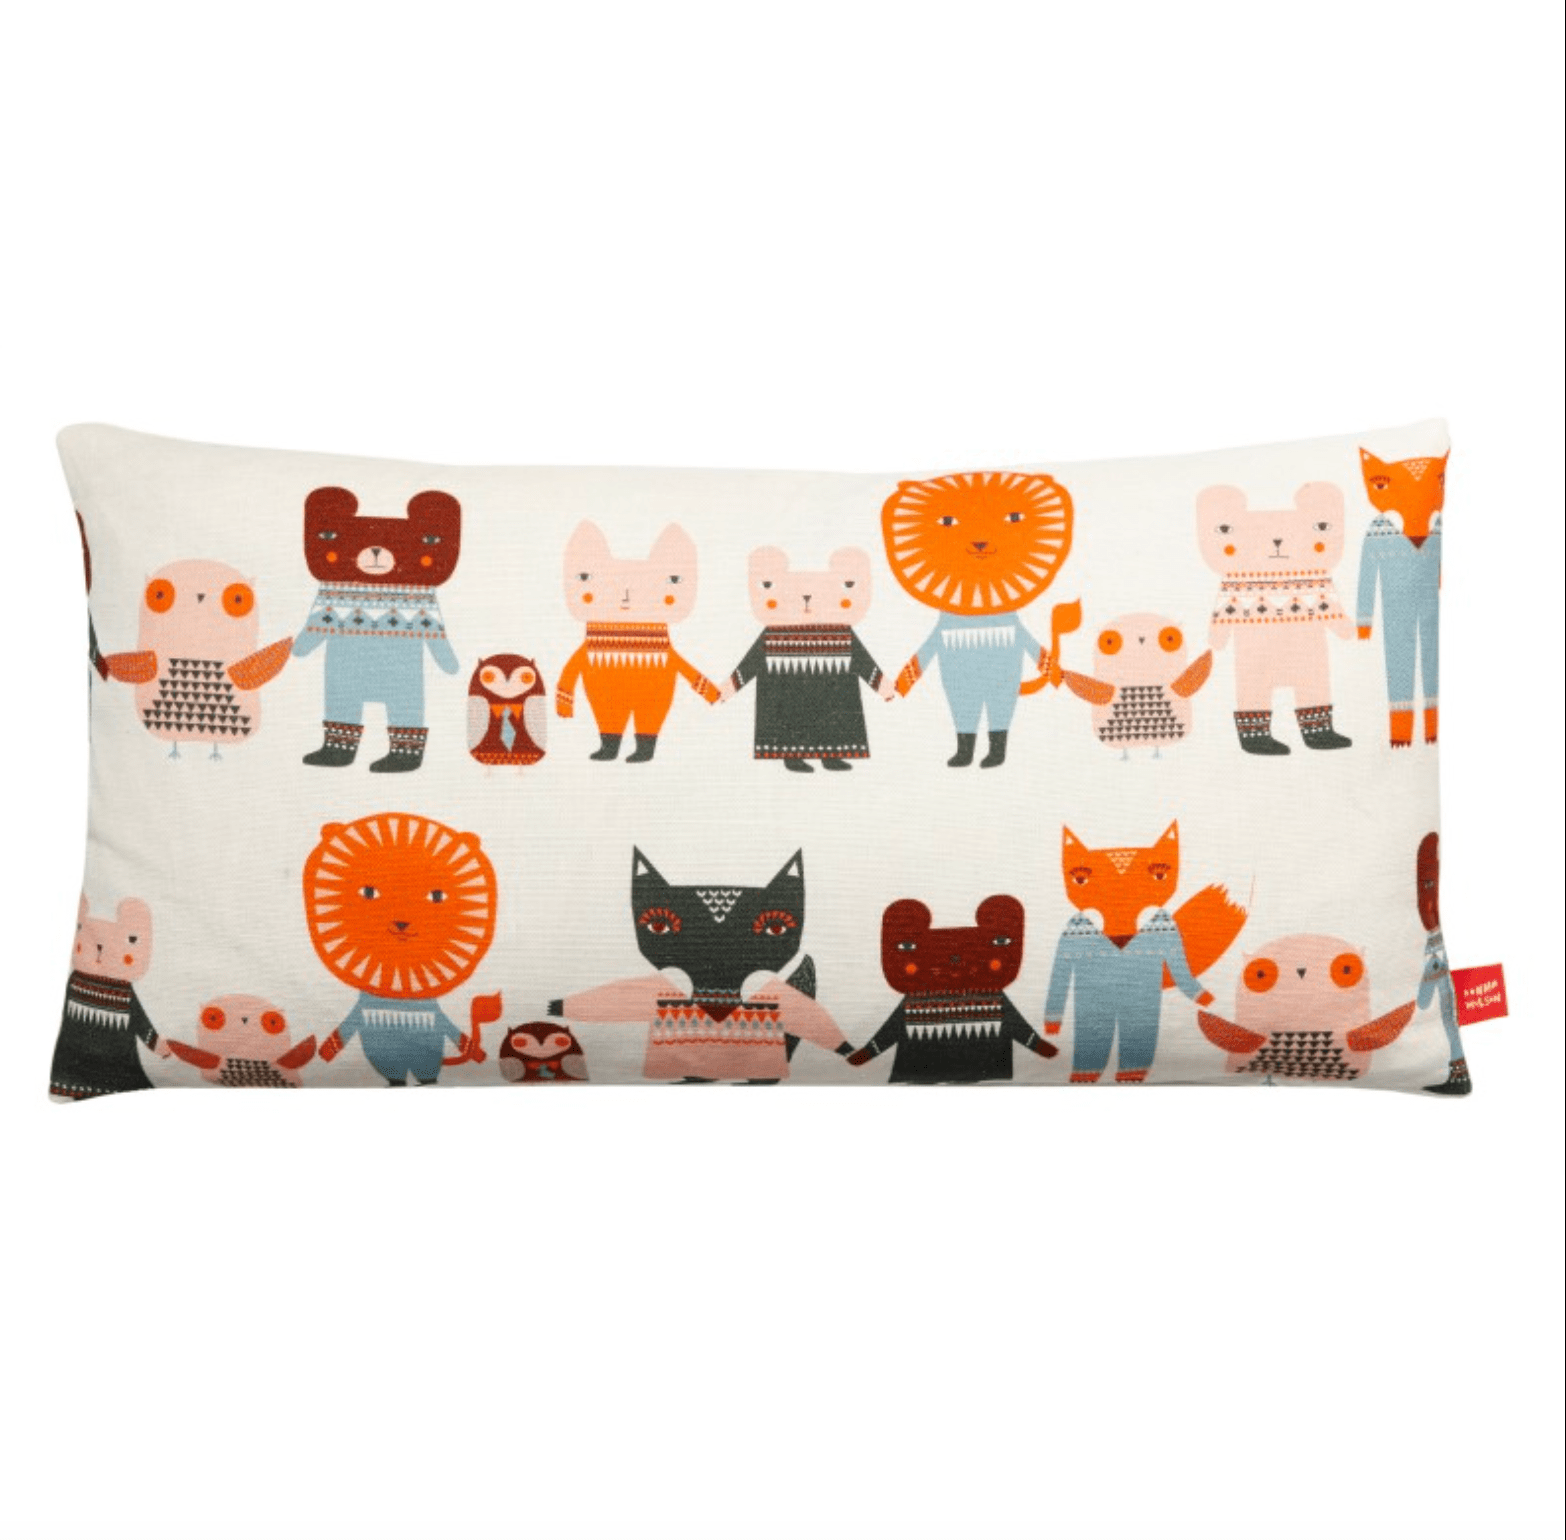 https://www.donnawilson.com/products/for-home/cushions